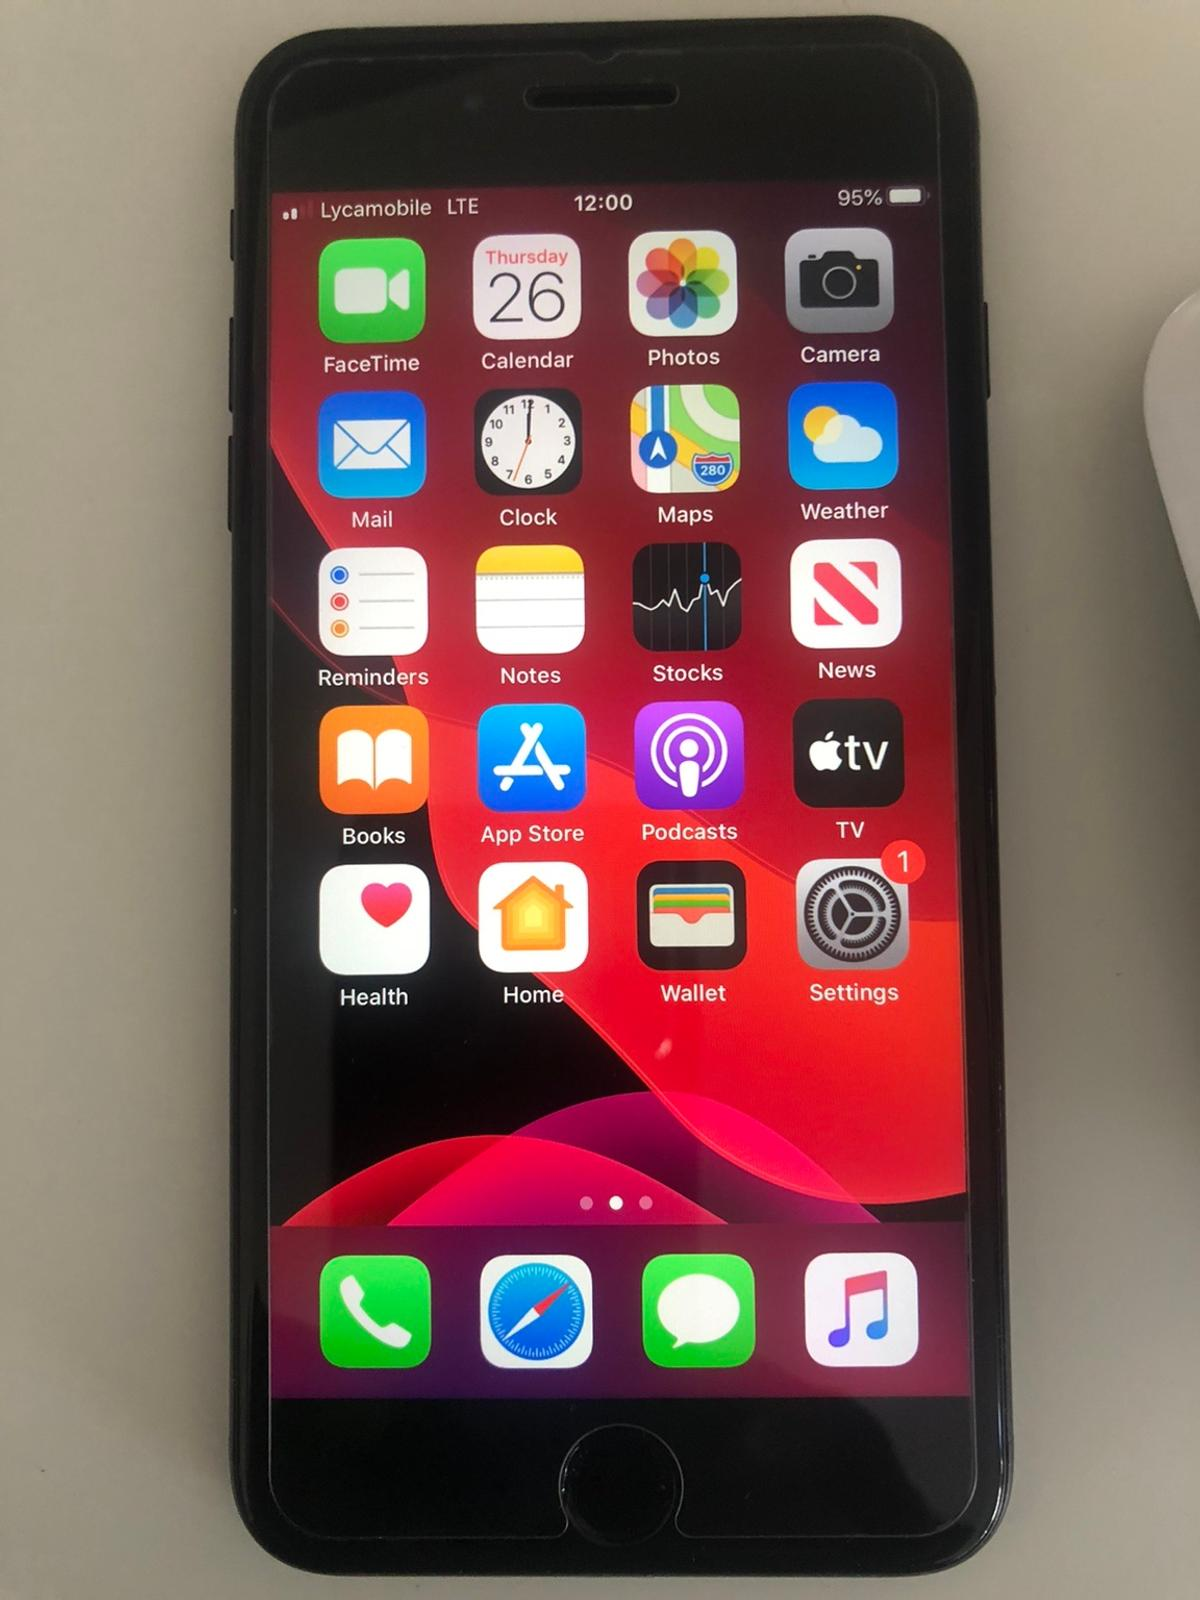 Hi here I have for sale iPhone 7 Plus mate black 128GB unlocked new CONDITION well look after fully working oder grate shape see pitchers for more details any question fell free to contact me thanks for looking.